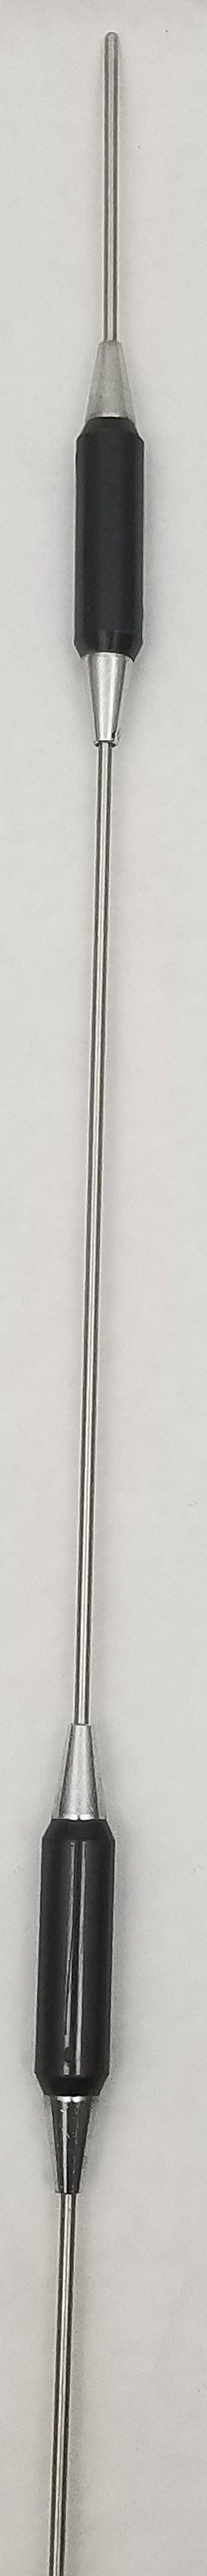 MUR8045 - Maxrad 806-866Mhz 5Db Replacement Rod Assembly